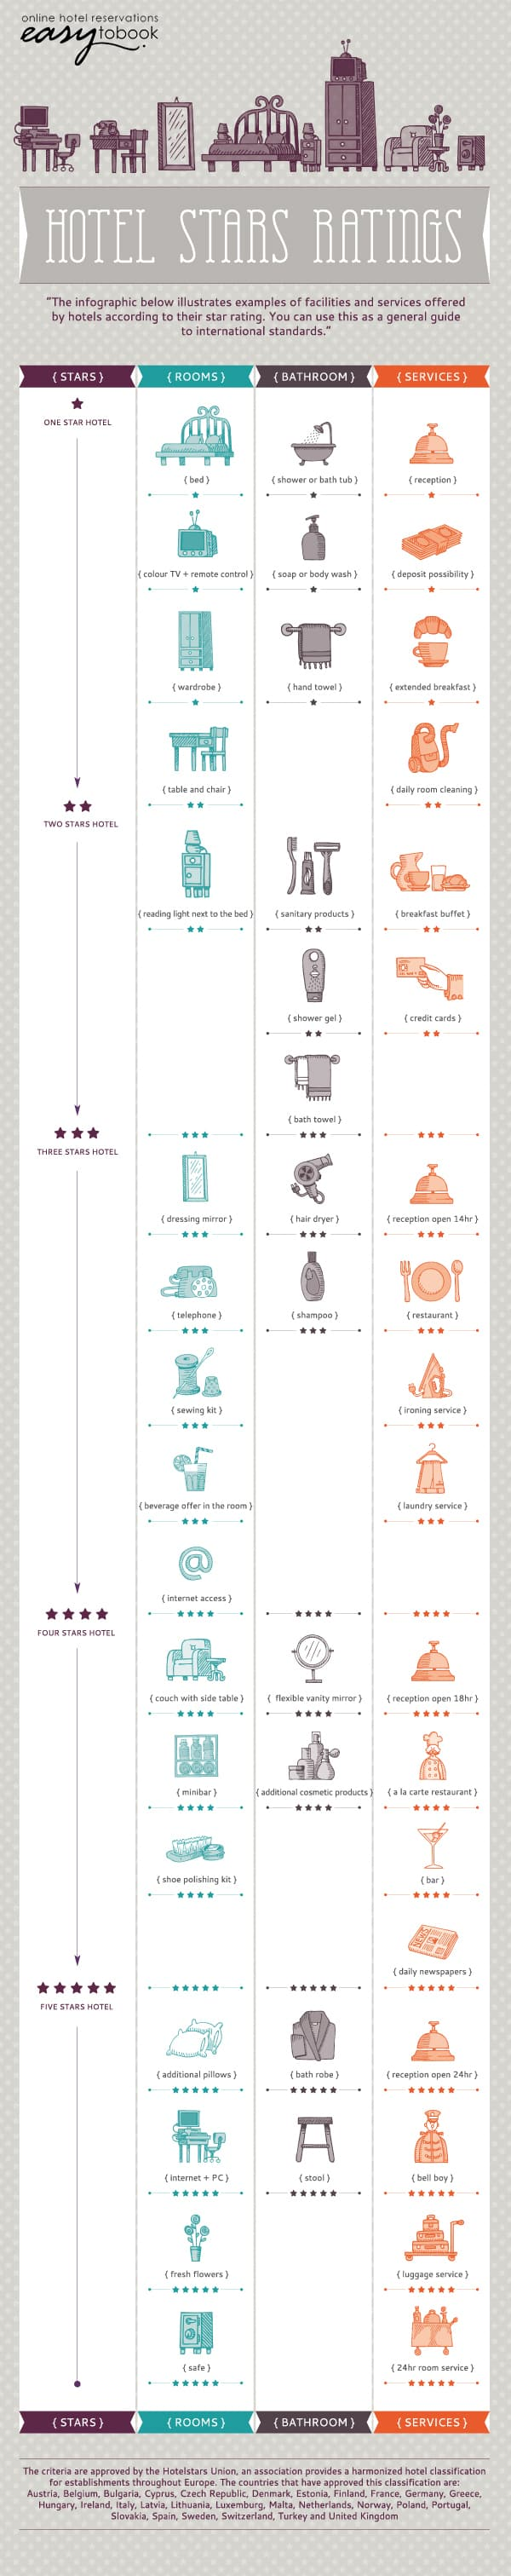 hotel Stars ratings infographic